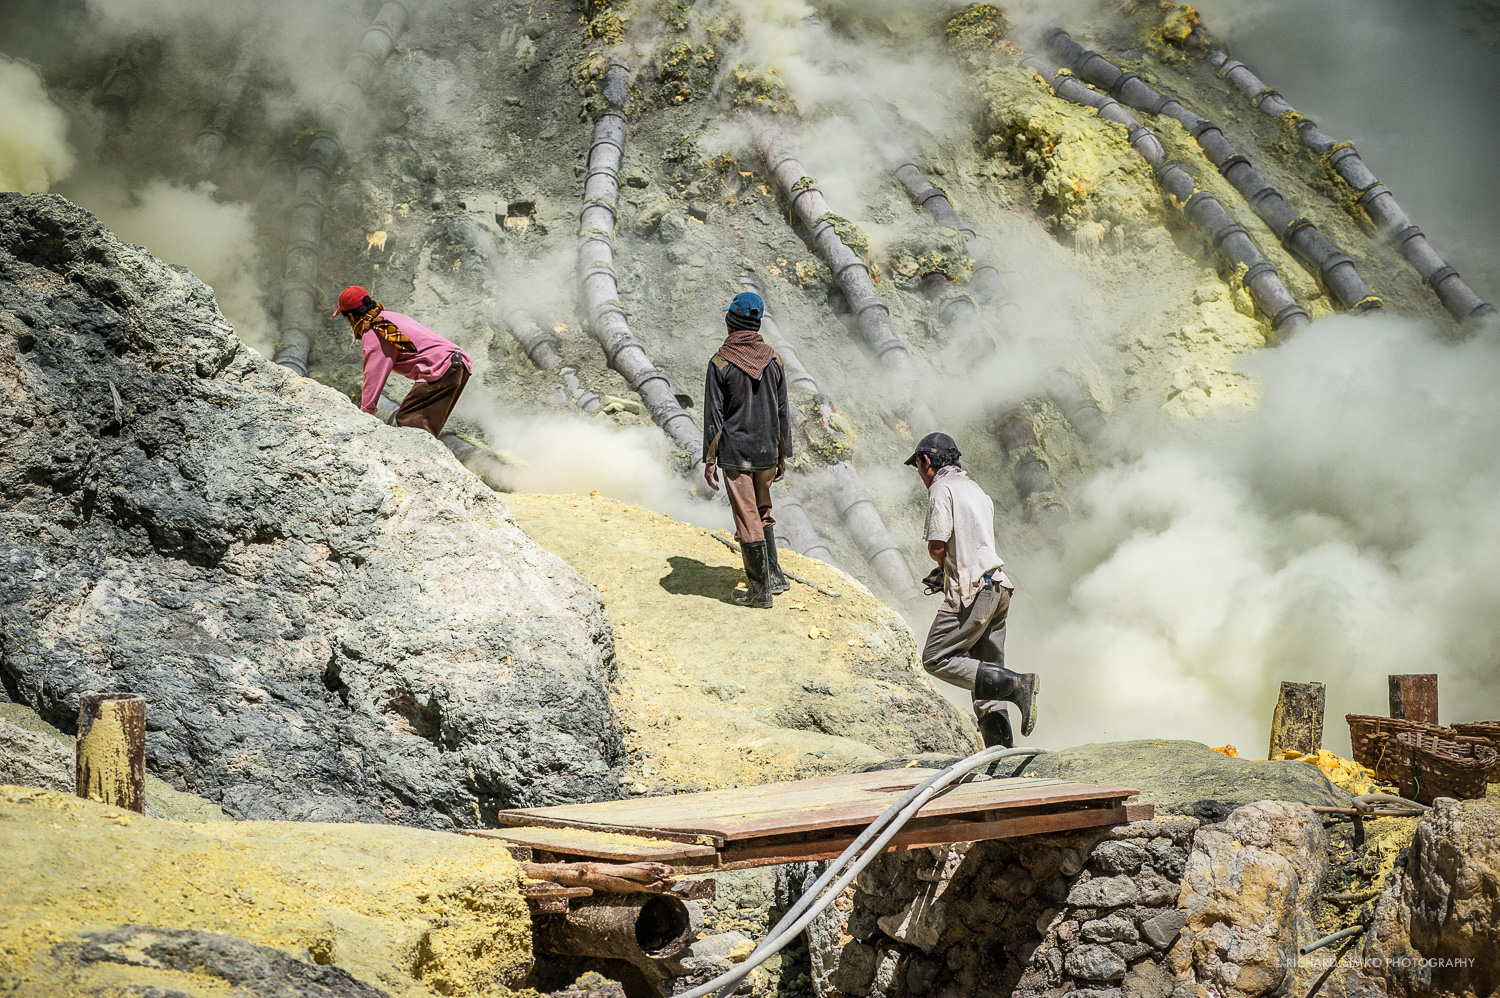 Ordinary day in the crater of Kawah Ijen.. Miners are turning molten sulfur into a rock which is then loaded into baskets and carried out of the crater. This is very unhealthy place for work. Of course they don't have mask protection and air is filled with fairly dangerous sulfur gas. There is not too much room to escape it so if the wind blows your way, it is your bad luck.